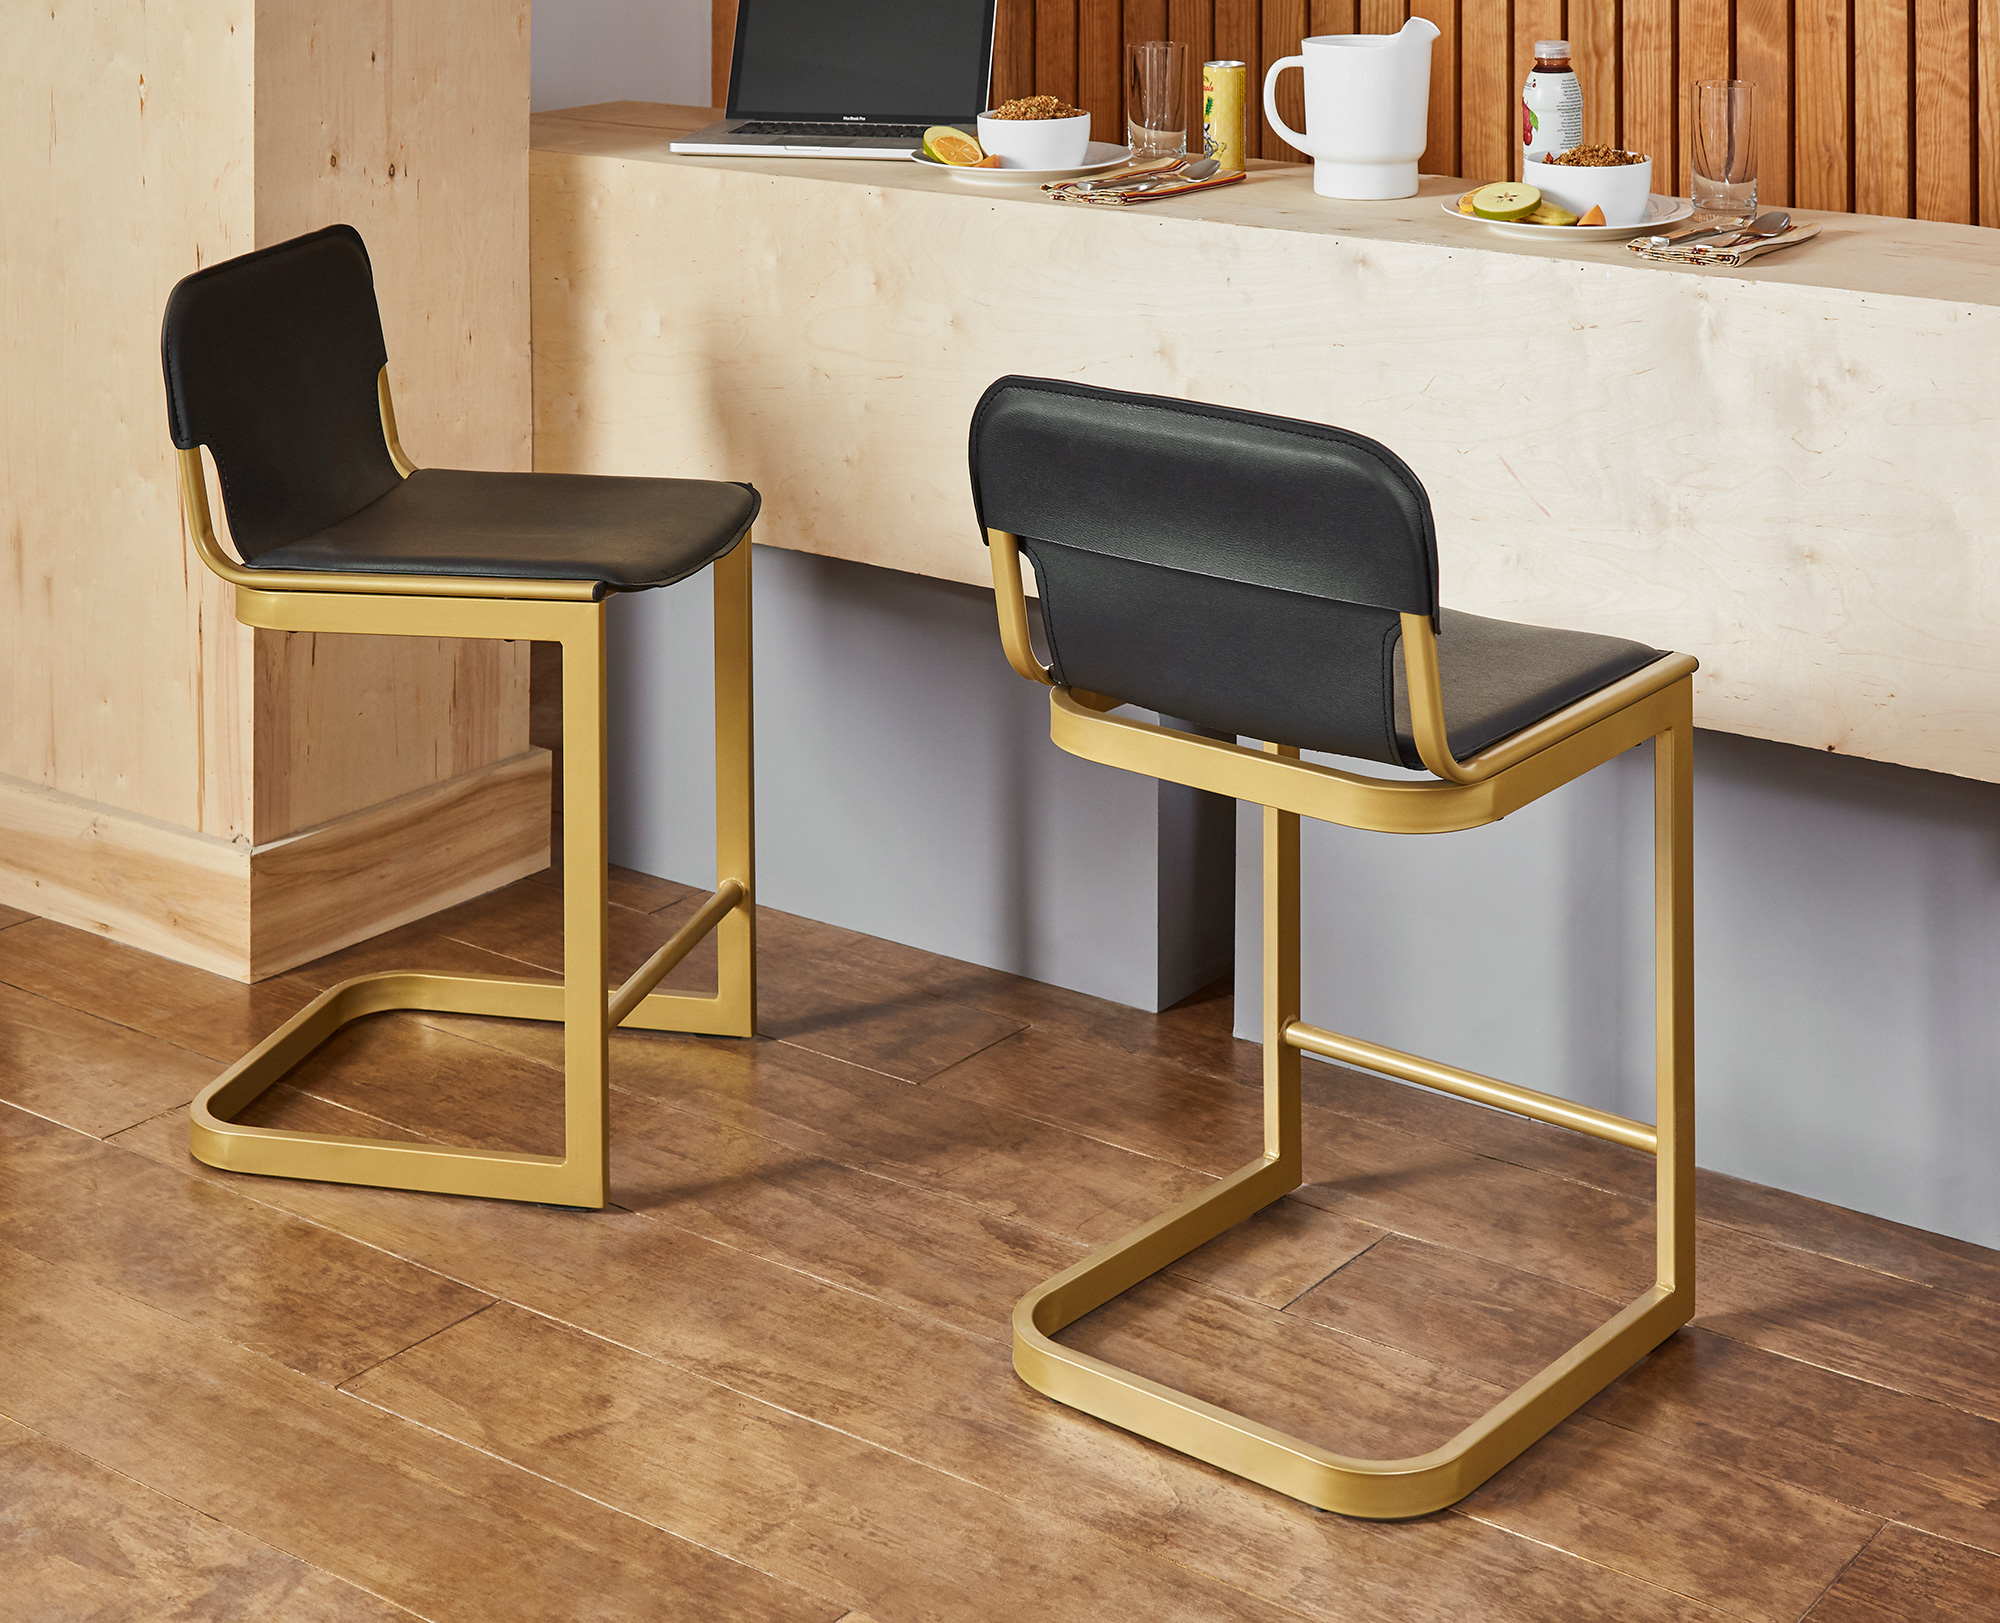 F3 iLive dining stool for student housing